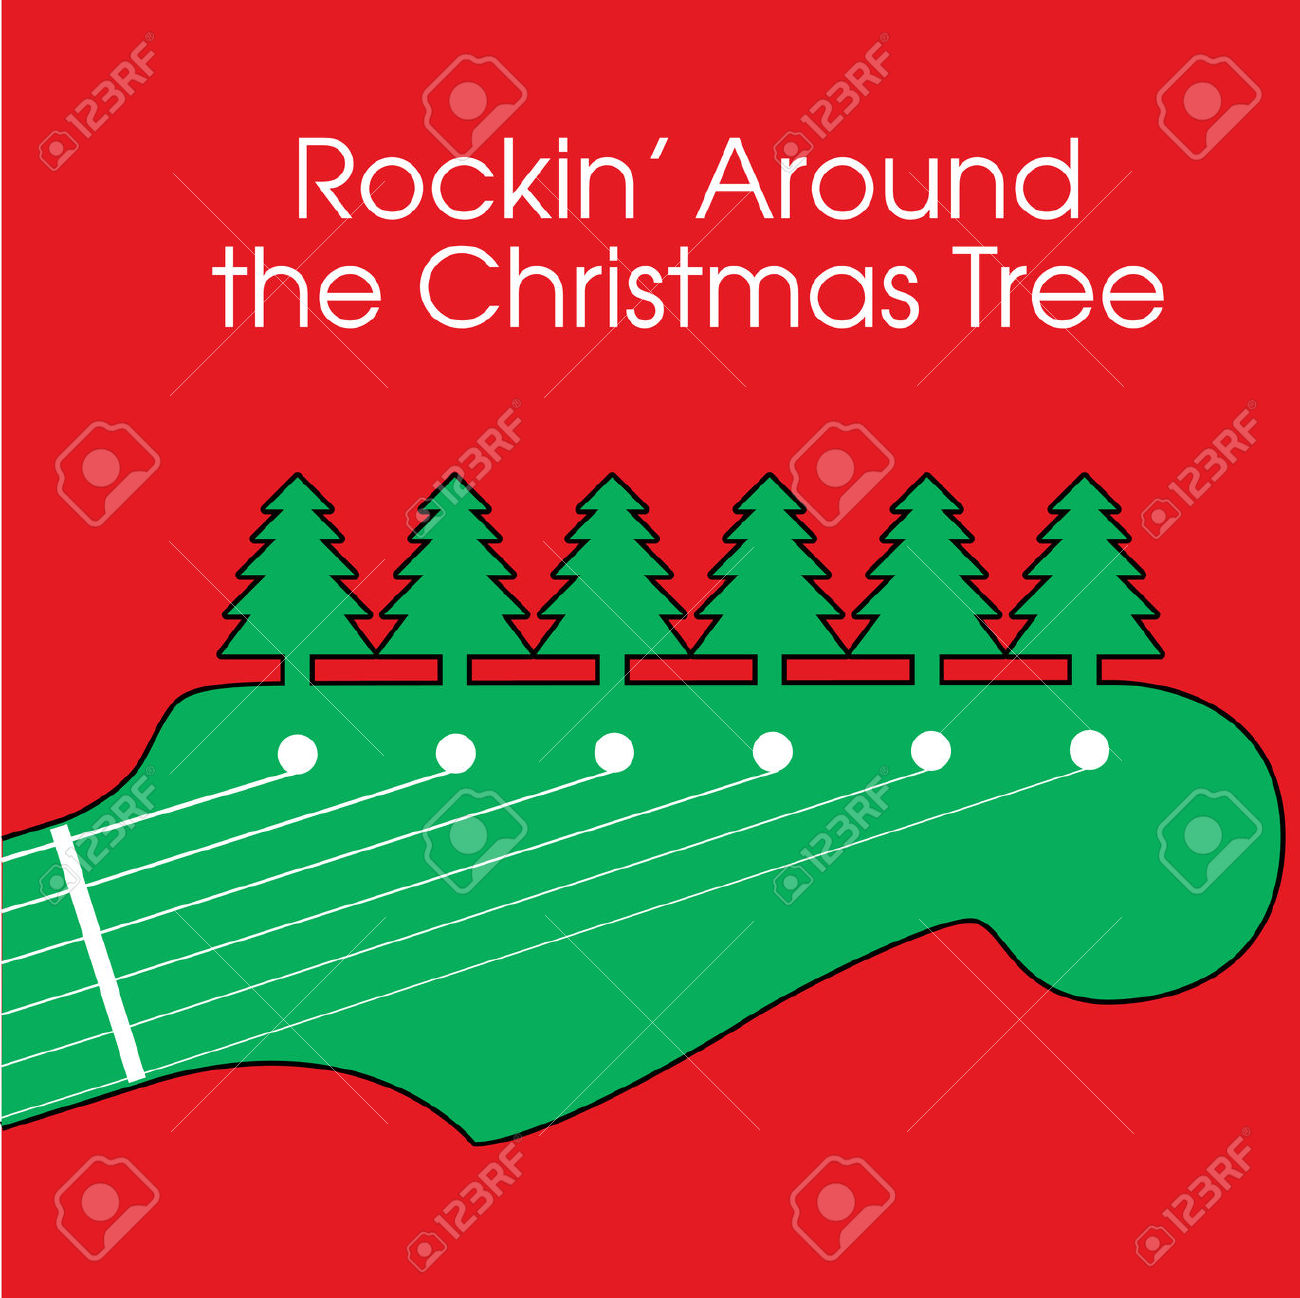 Music playing around the christmas tree clipart.